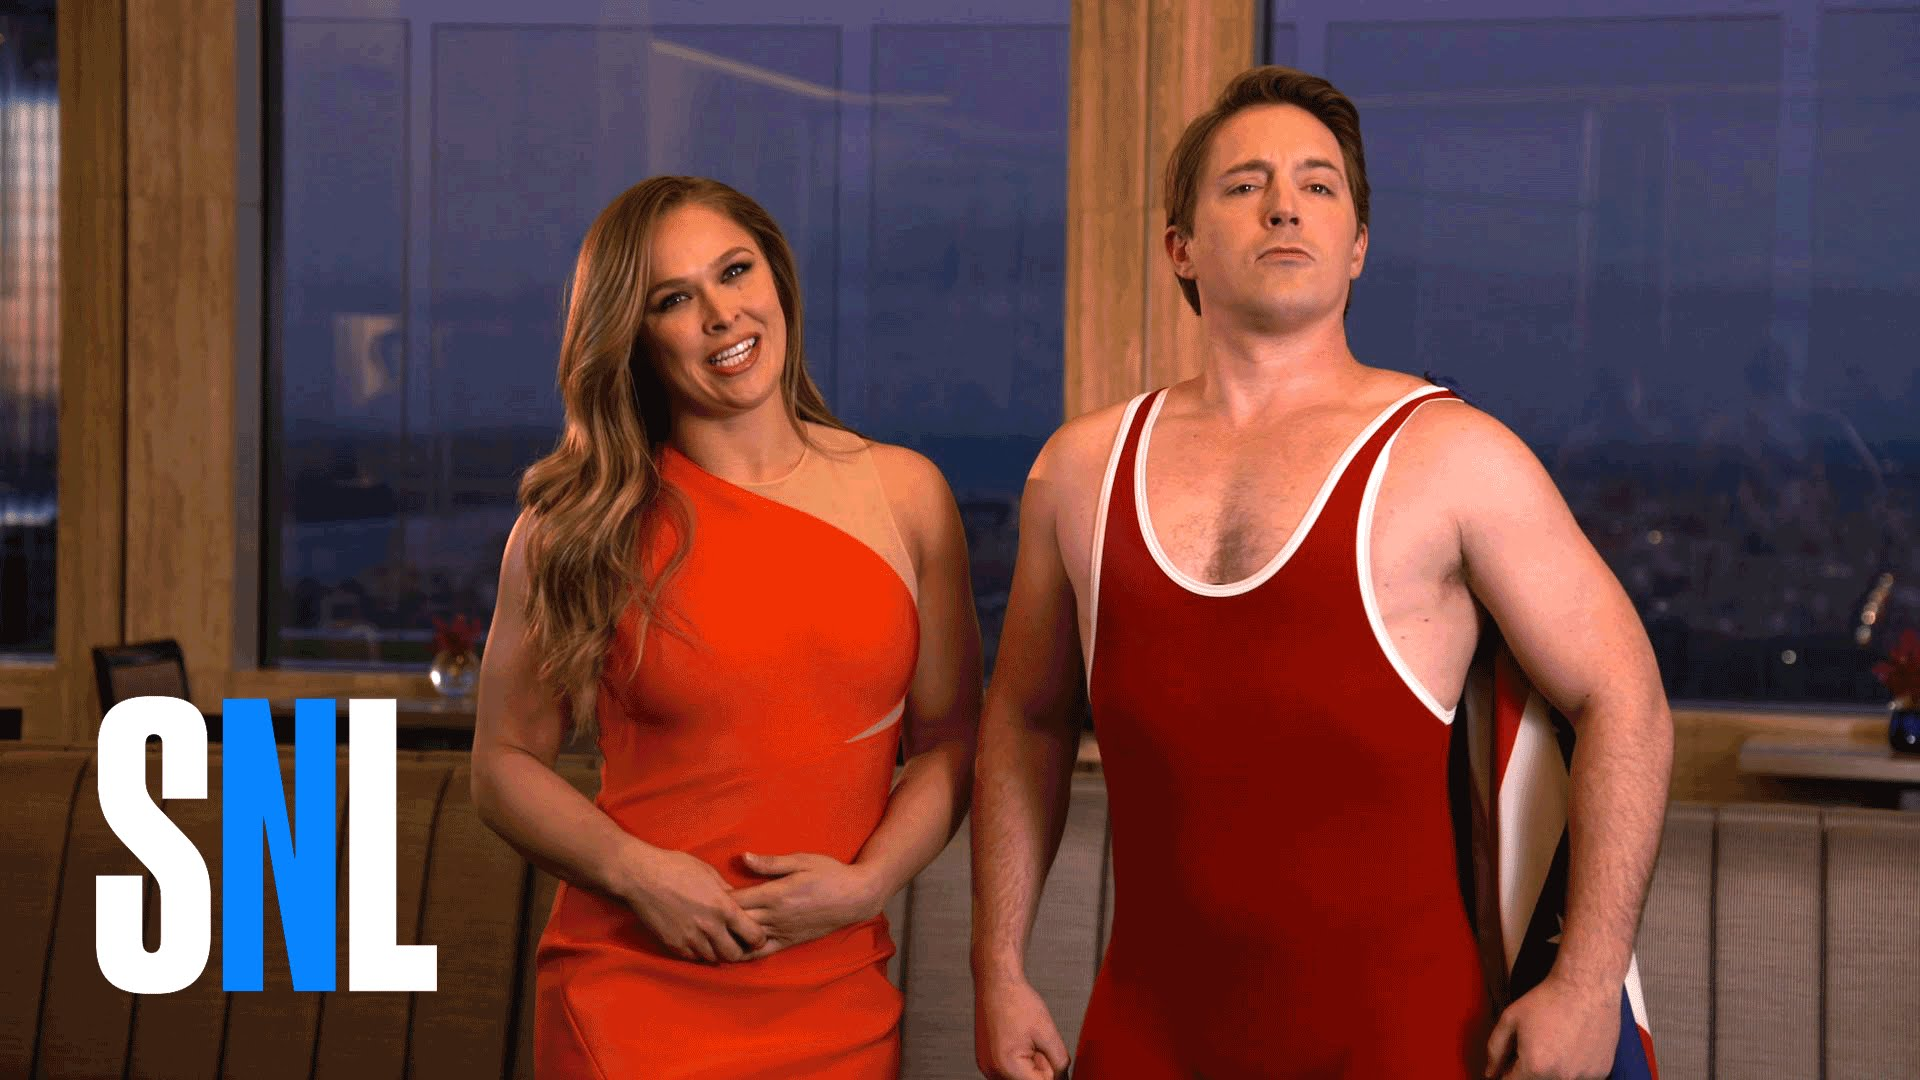 Ronda Rousey's SNL Promos Are Funnier Than SNL